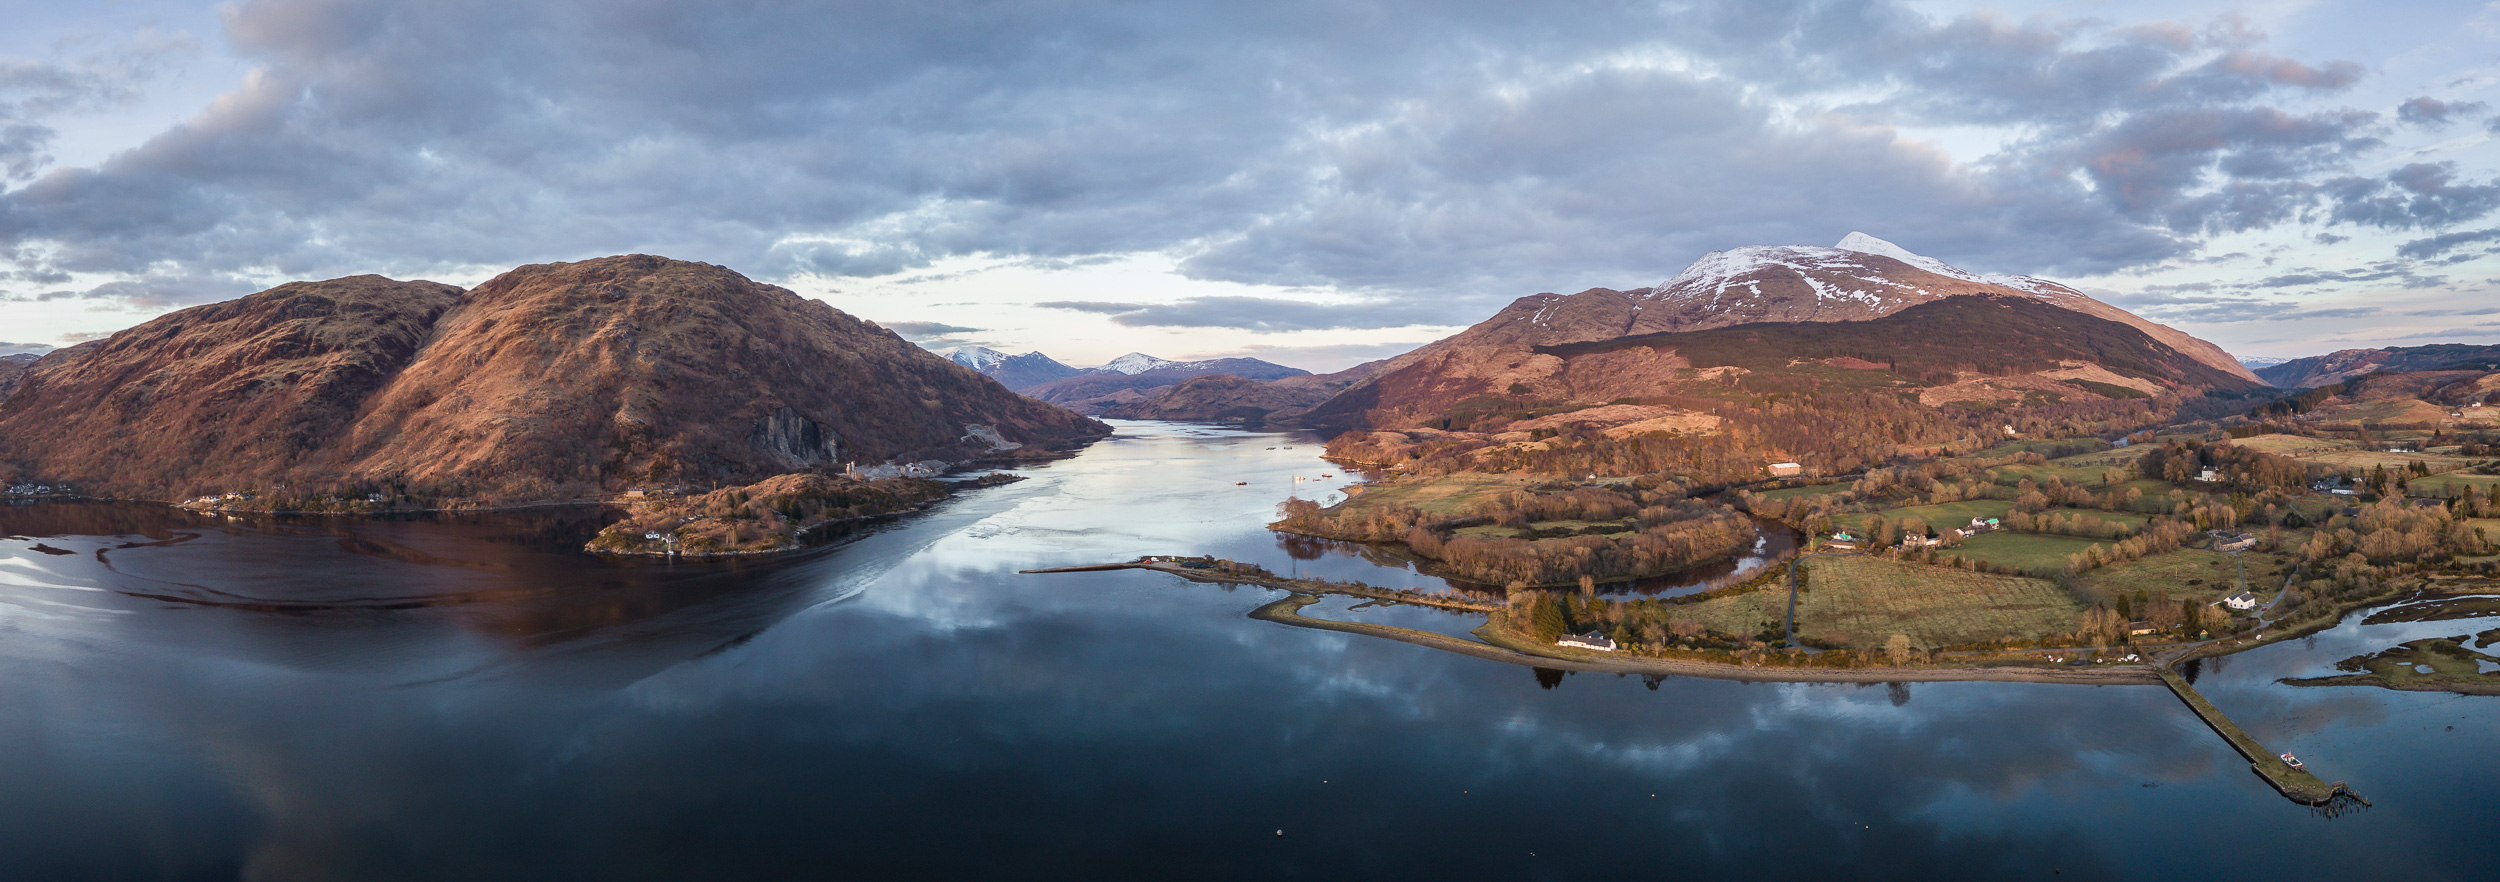 I took this image a few days before I shot the video. I much prefer the light in this one. DJI Mavic Pro, 1/125th sec at f/2.2, ISO 100, 26mm (35mm equiv'), stitched from 9 DNG files.